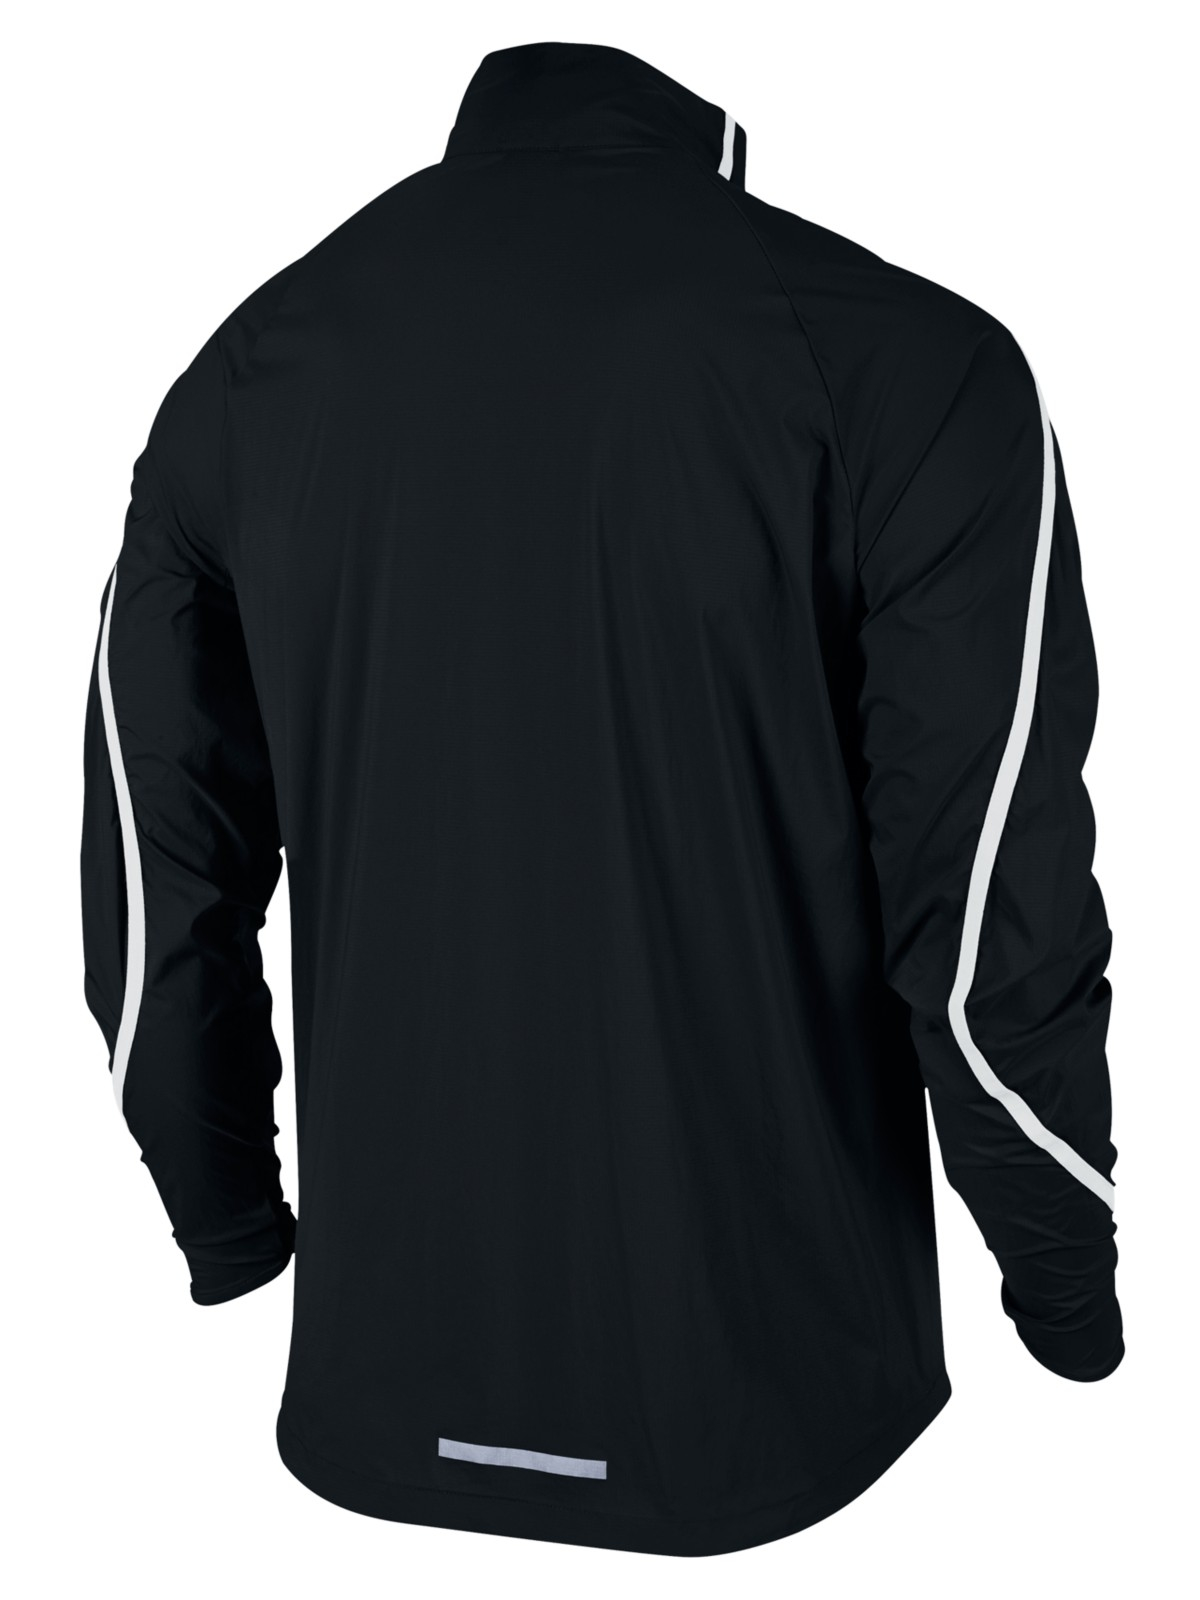 Nike Synthetic Shield Impossibly Light Running Jacket in Black for Men